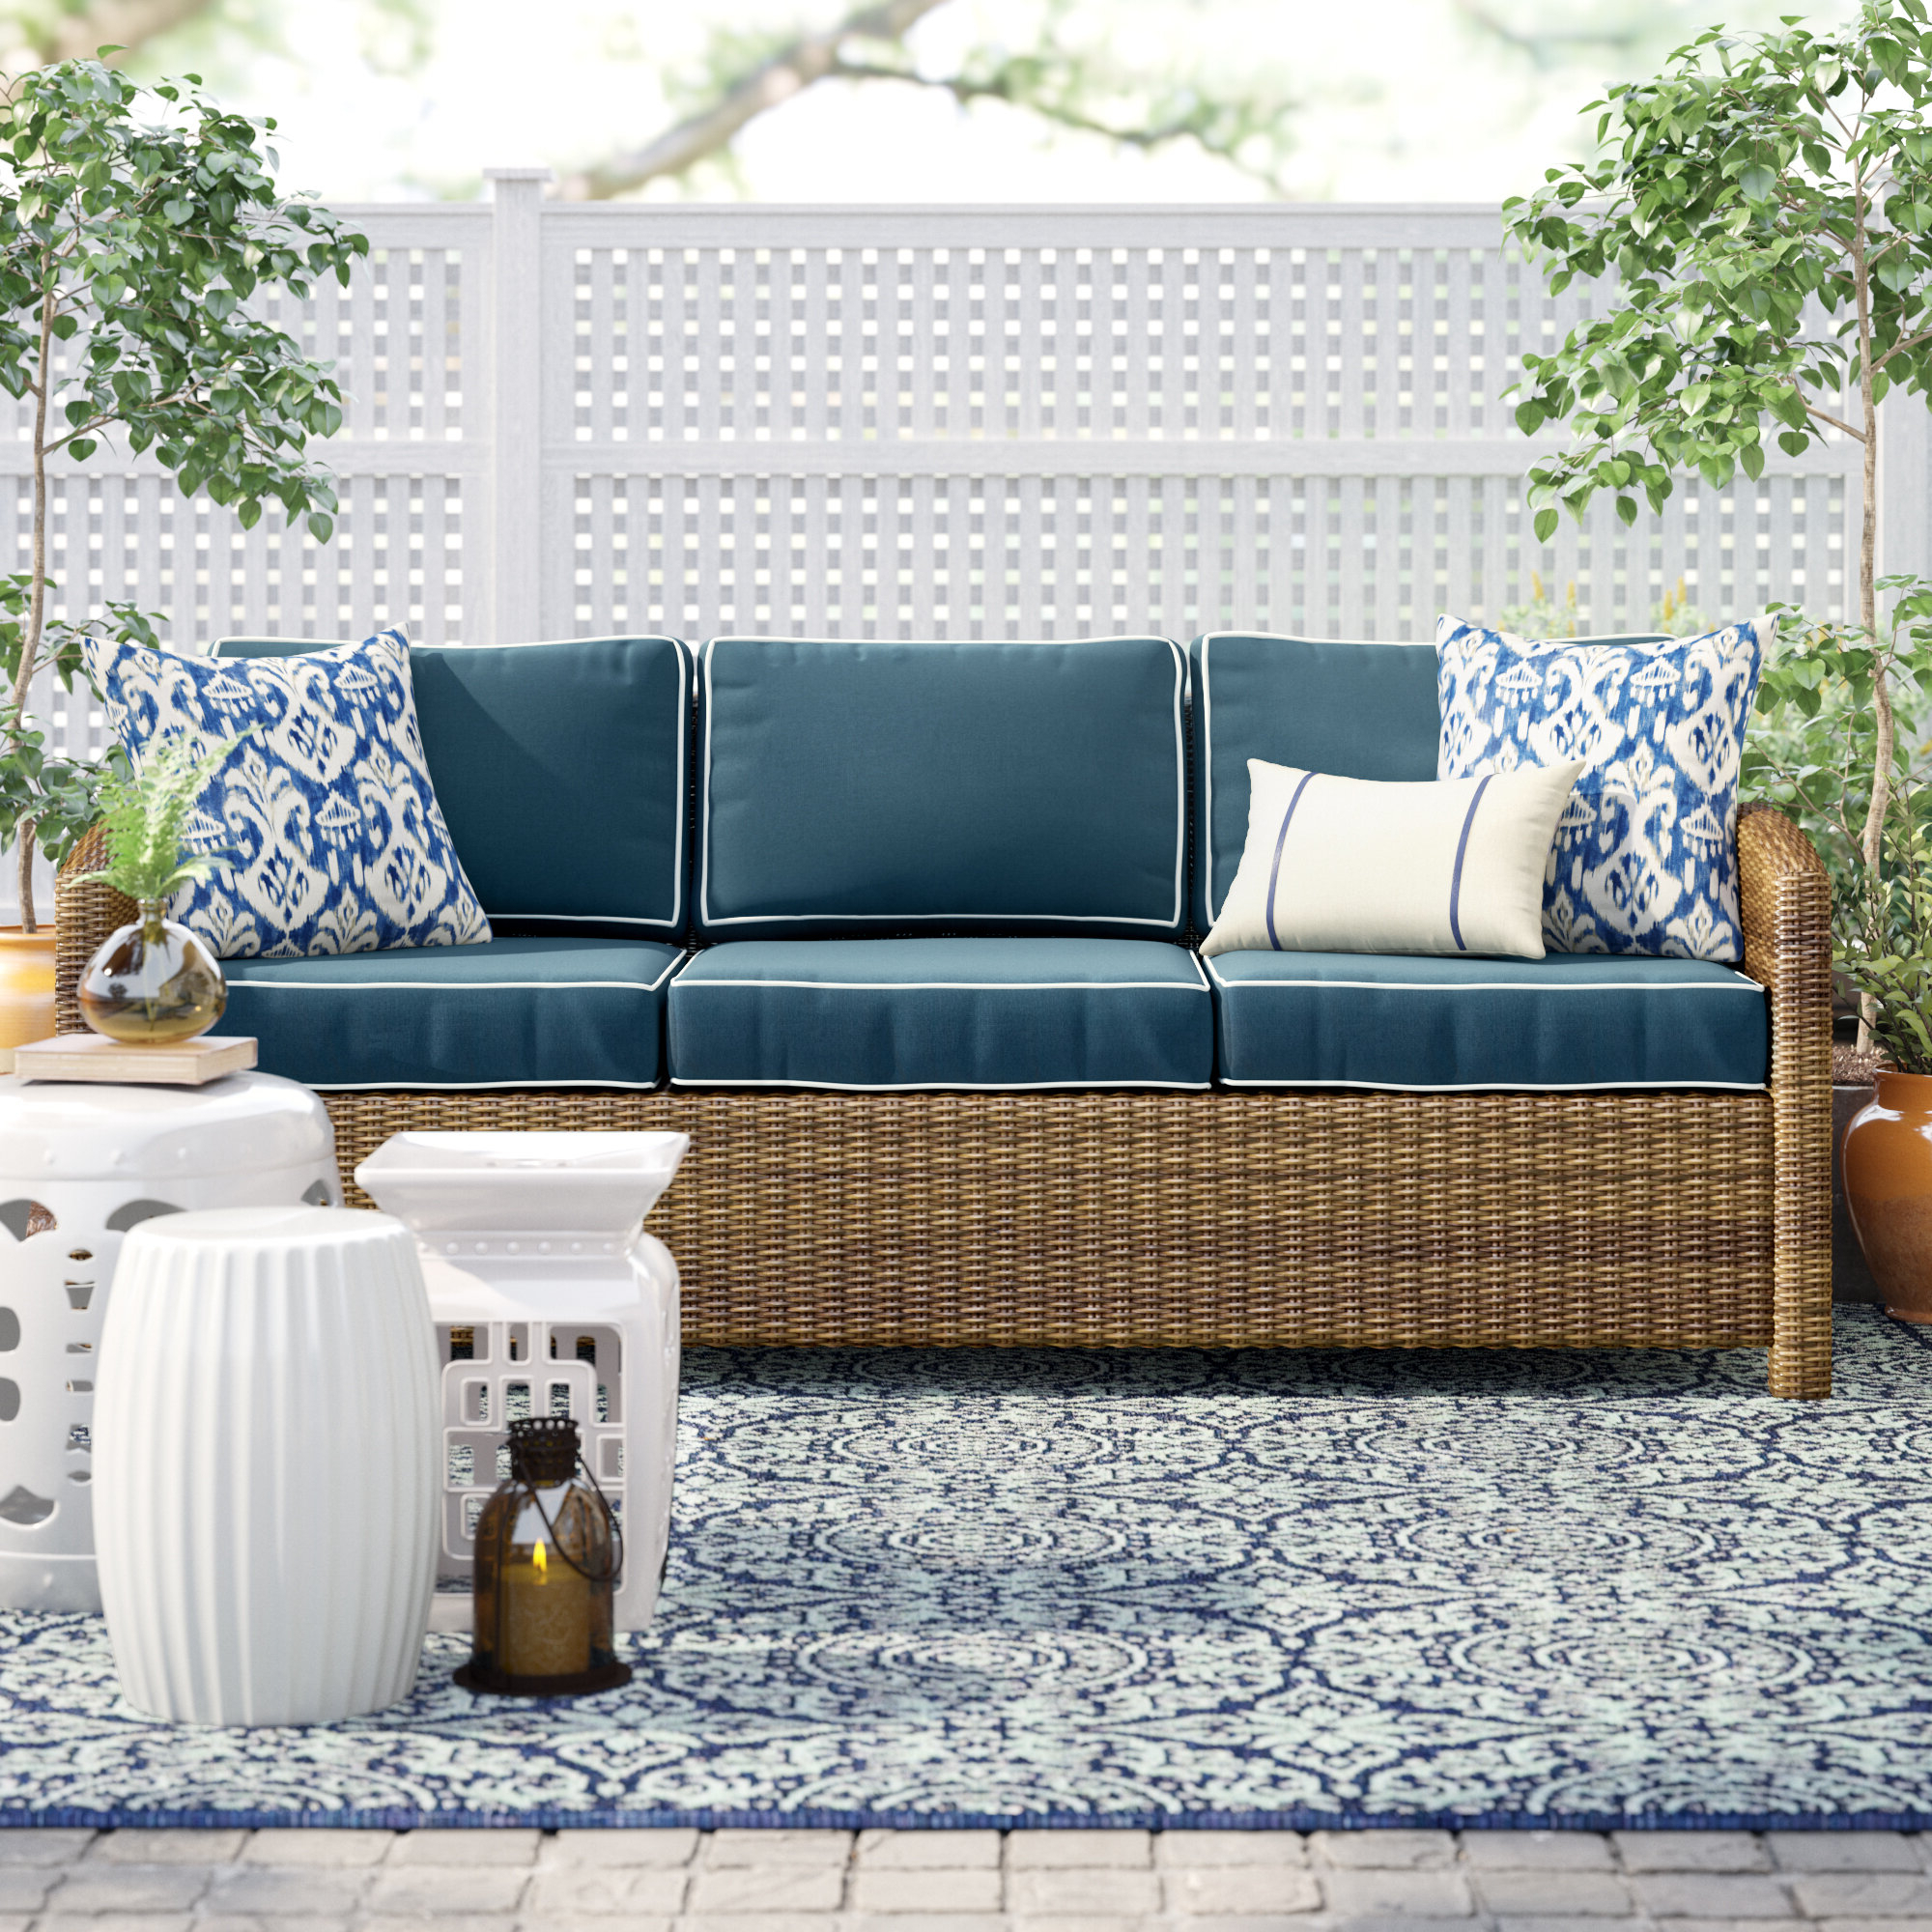 Famous Lawson Patio Sofa With Cushions With Lawson Wicker Loveseats With Cushions (View 16 of 25)